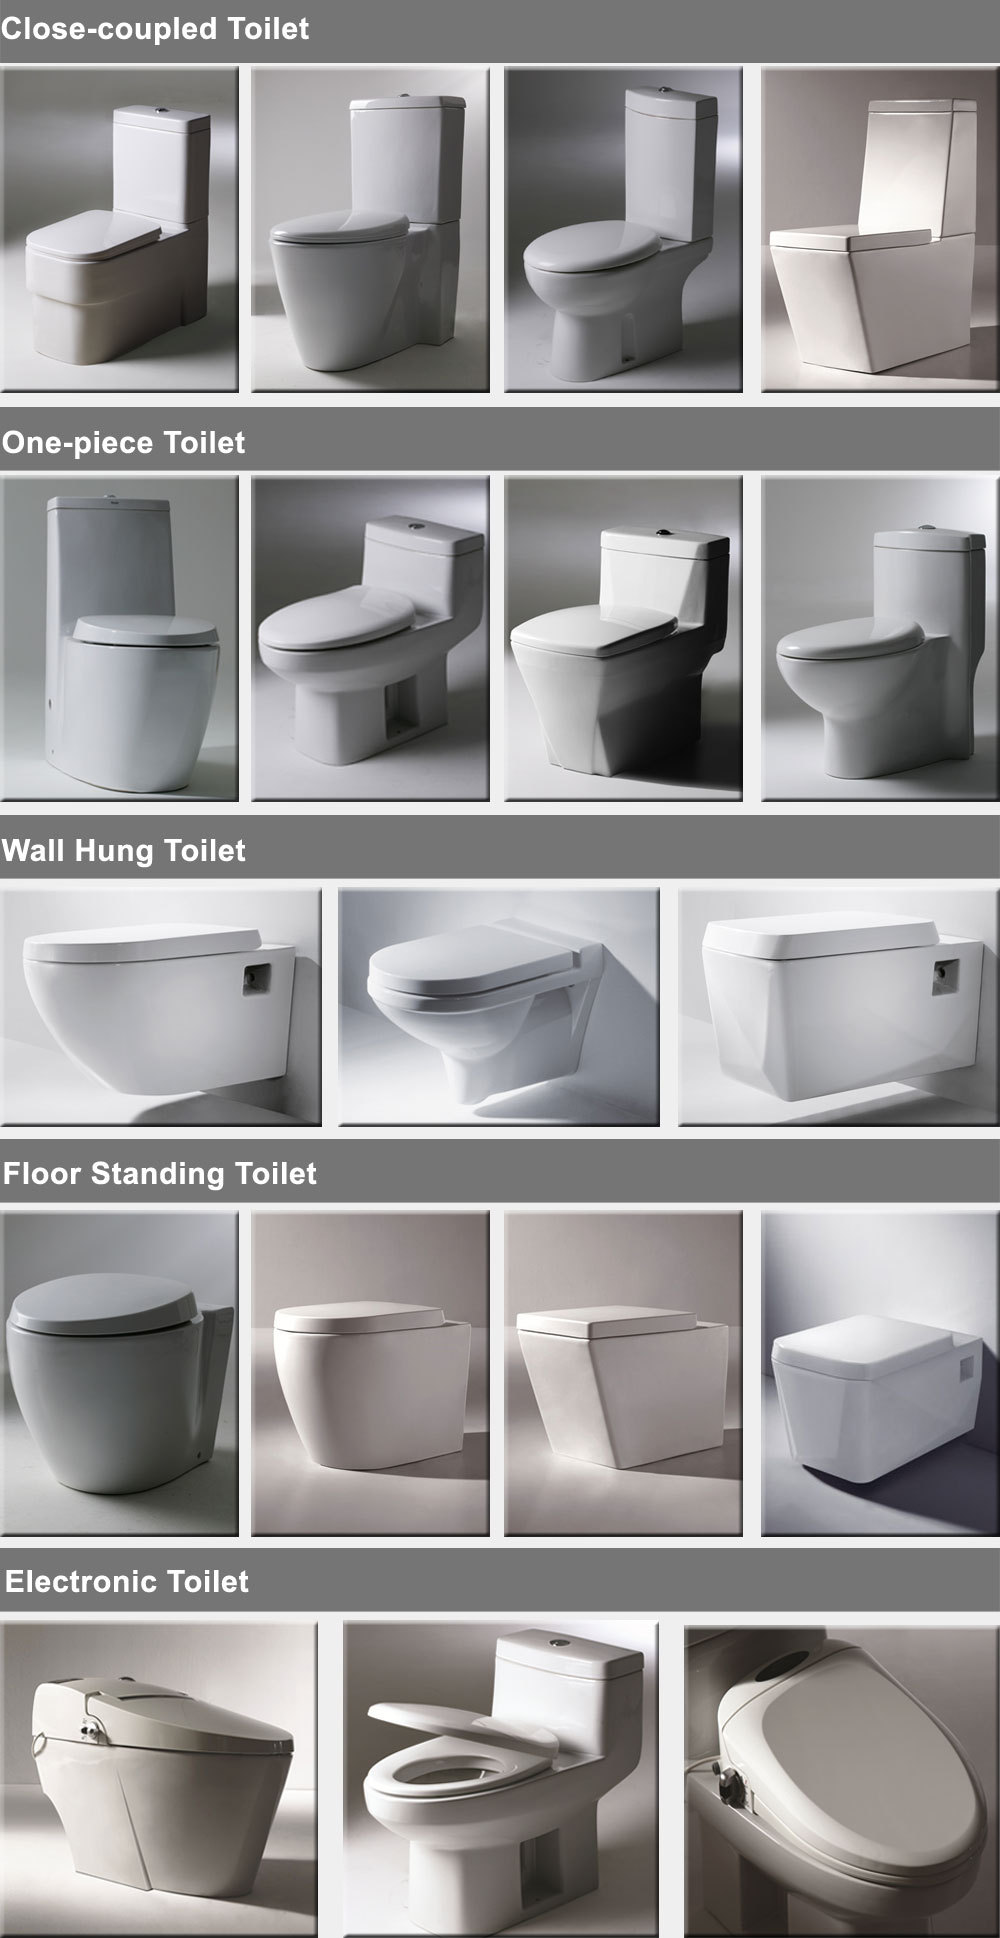 Bravat Sanitary Ware Ceramic Arab Toilet Wc With Competitive Price - Buy  Arab Toilet Wc,Cheap Wc Toilet,Bravat Sanitary Ware Product on Alibaba com